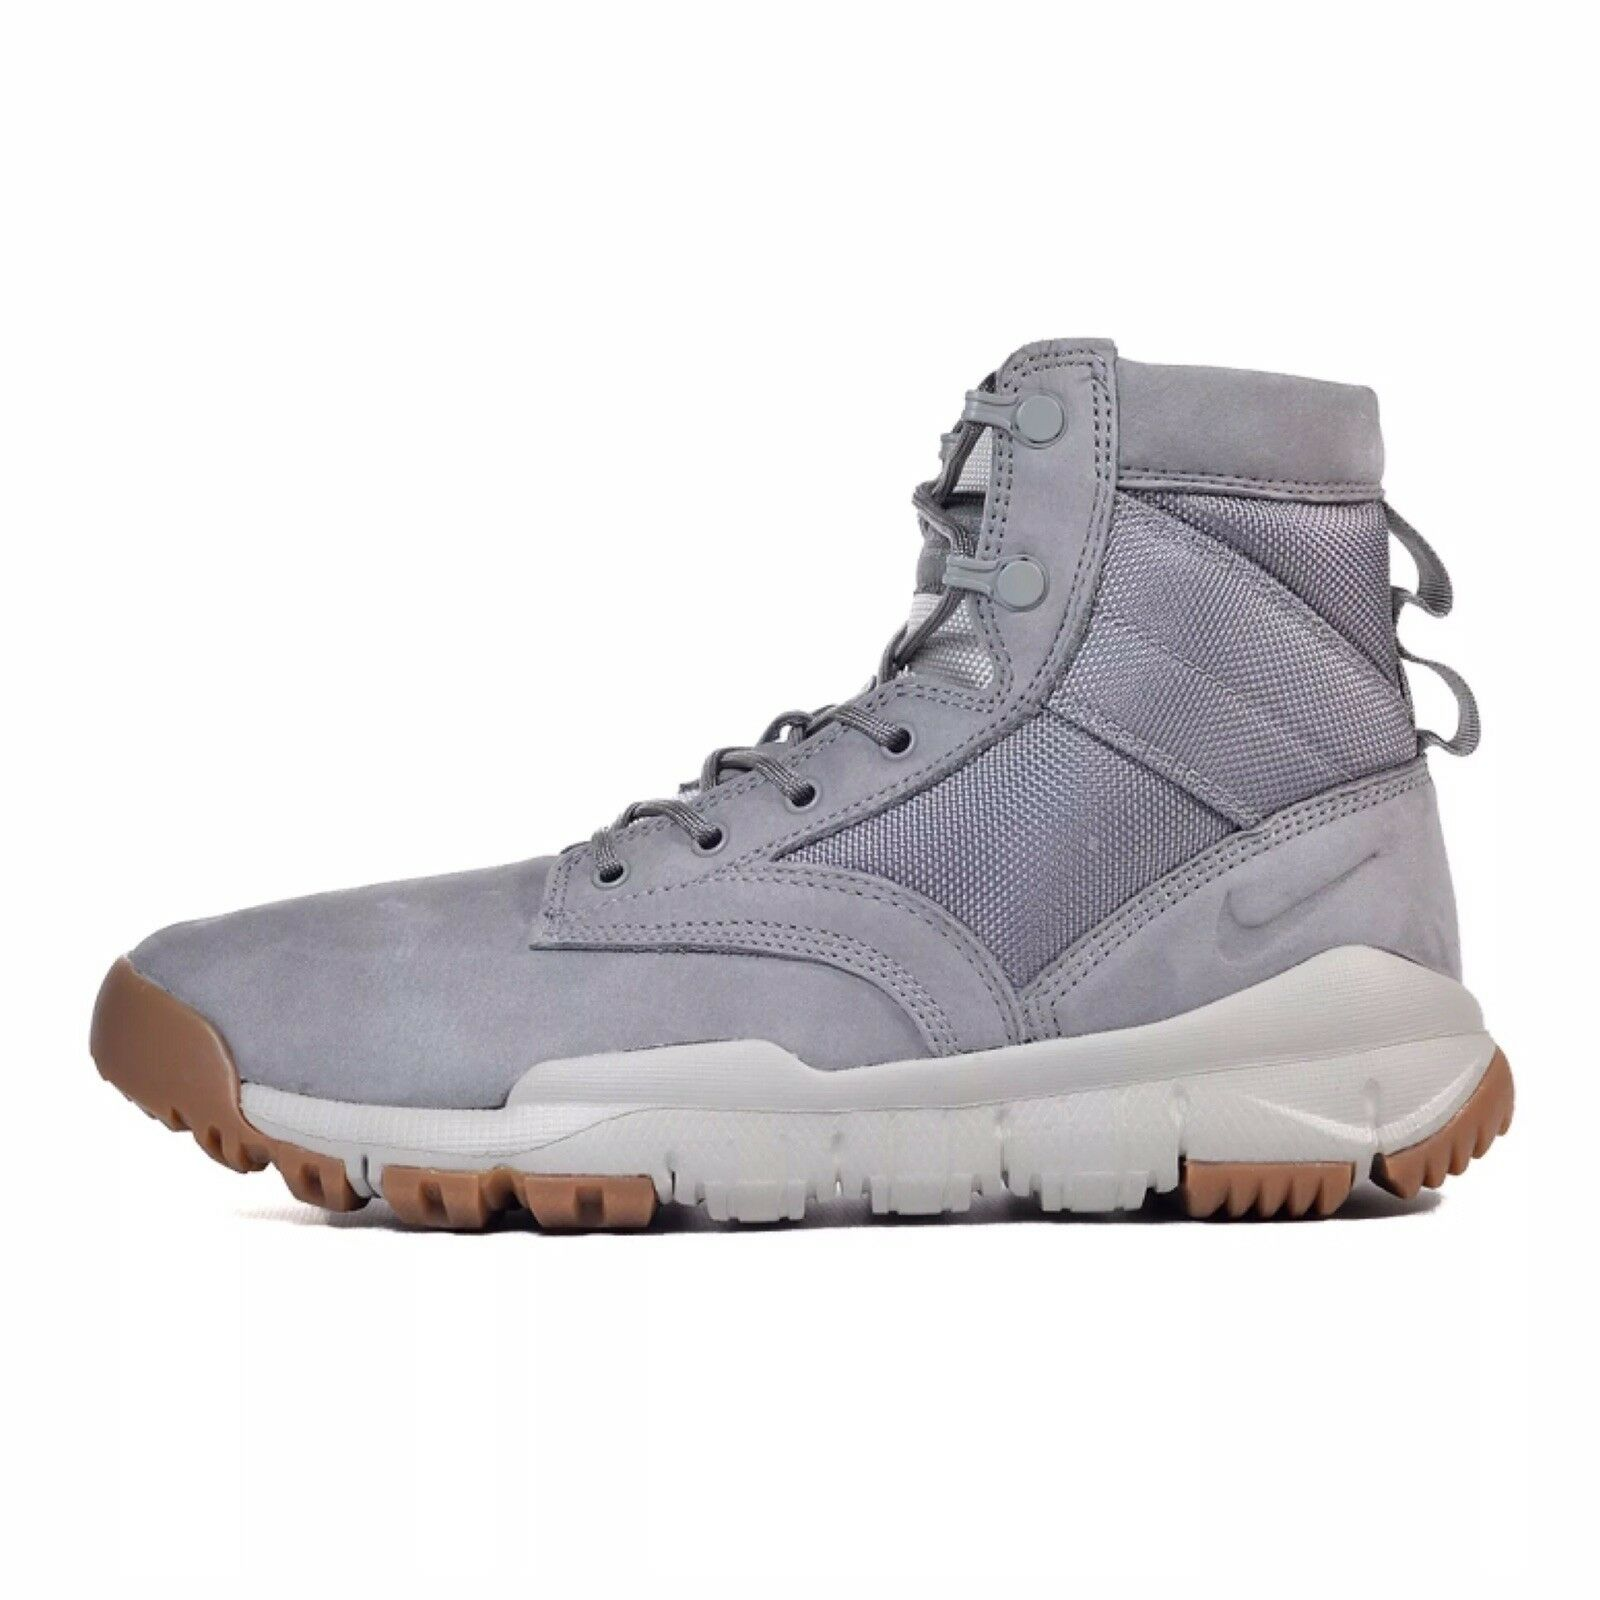 Men's Nike SFB 6  Leather NSW Grey Special Field Boots ACG Size 8 862507-003 New